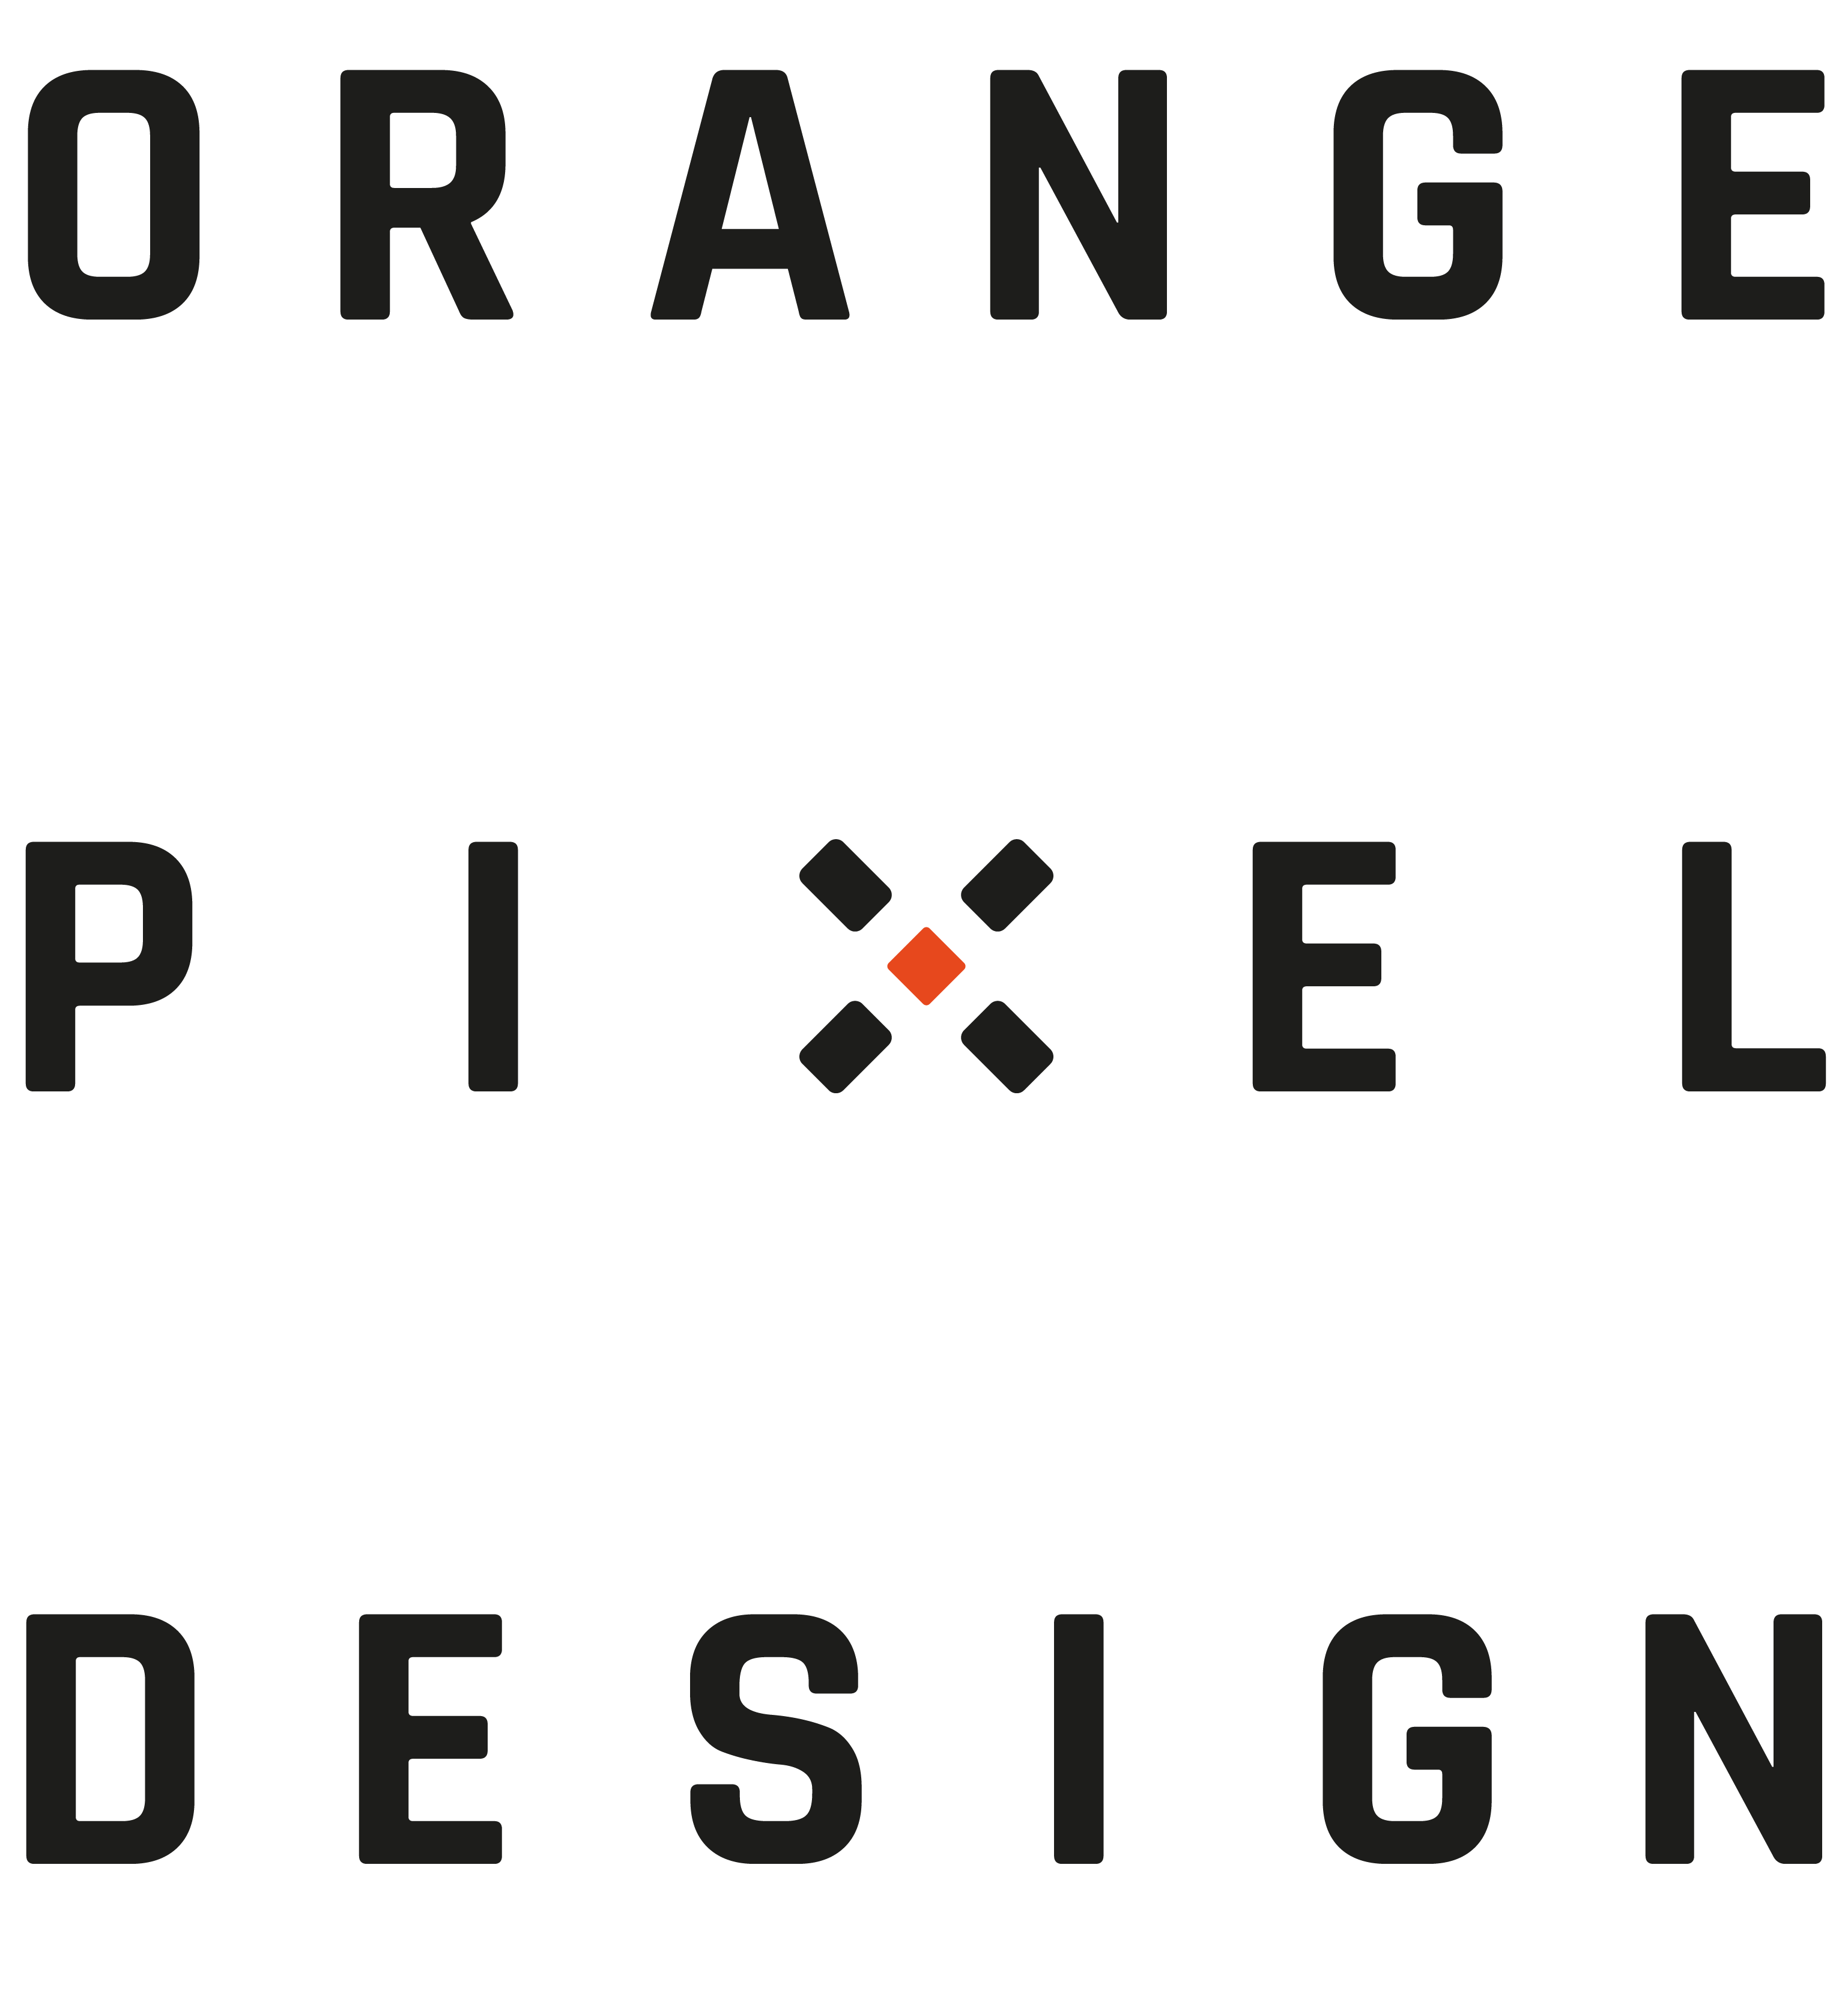 orange pixel design